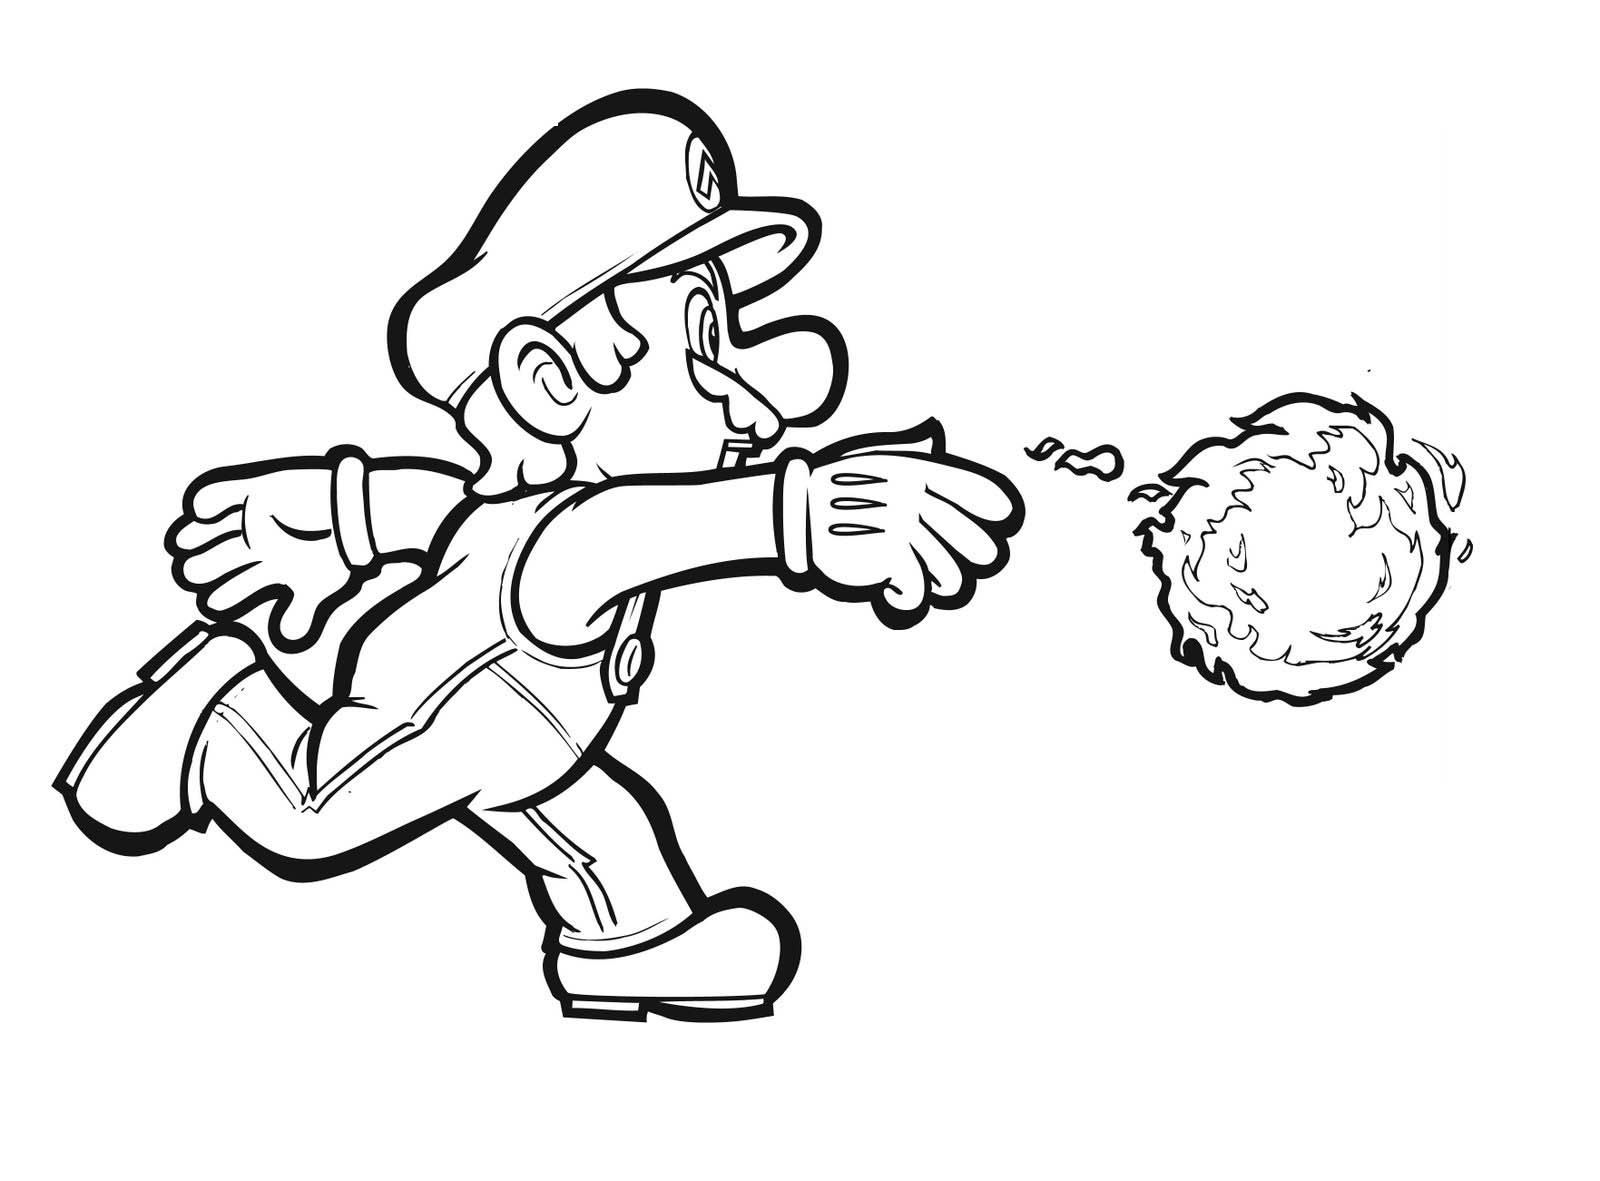 Free mario coloring pages to print - Amazing Of Free Mario Bros Coloring Pages By Mario Colori 702